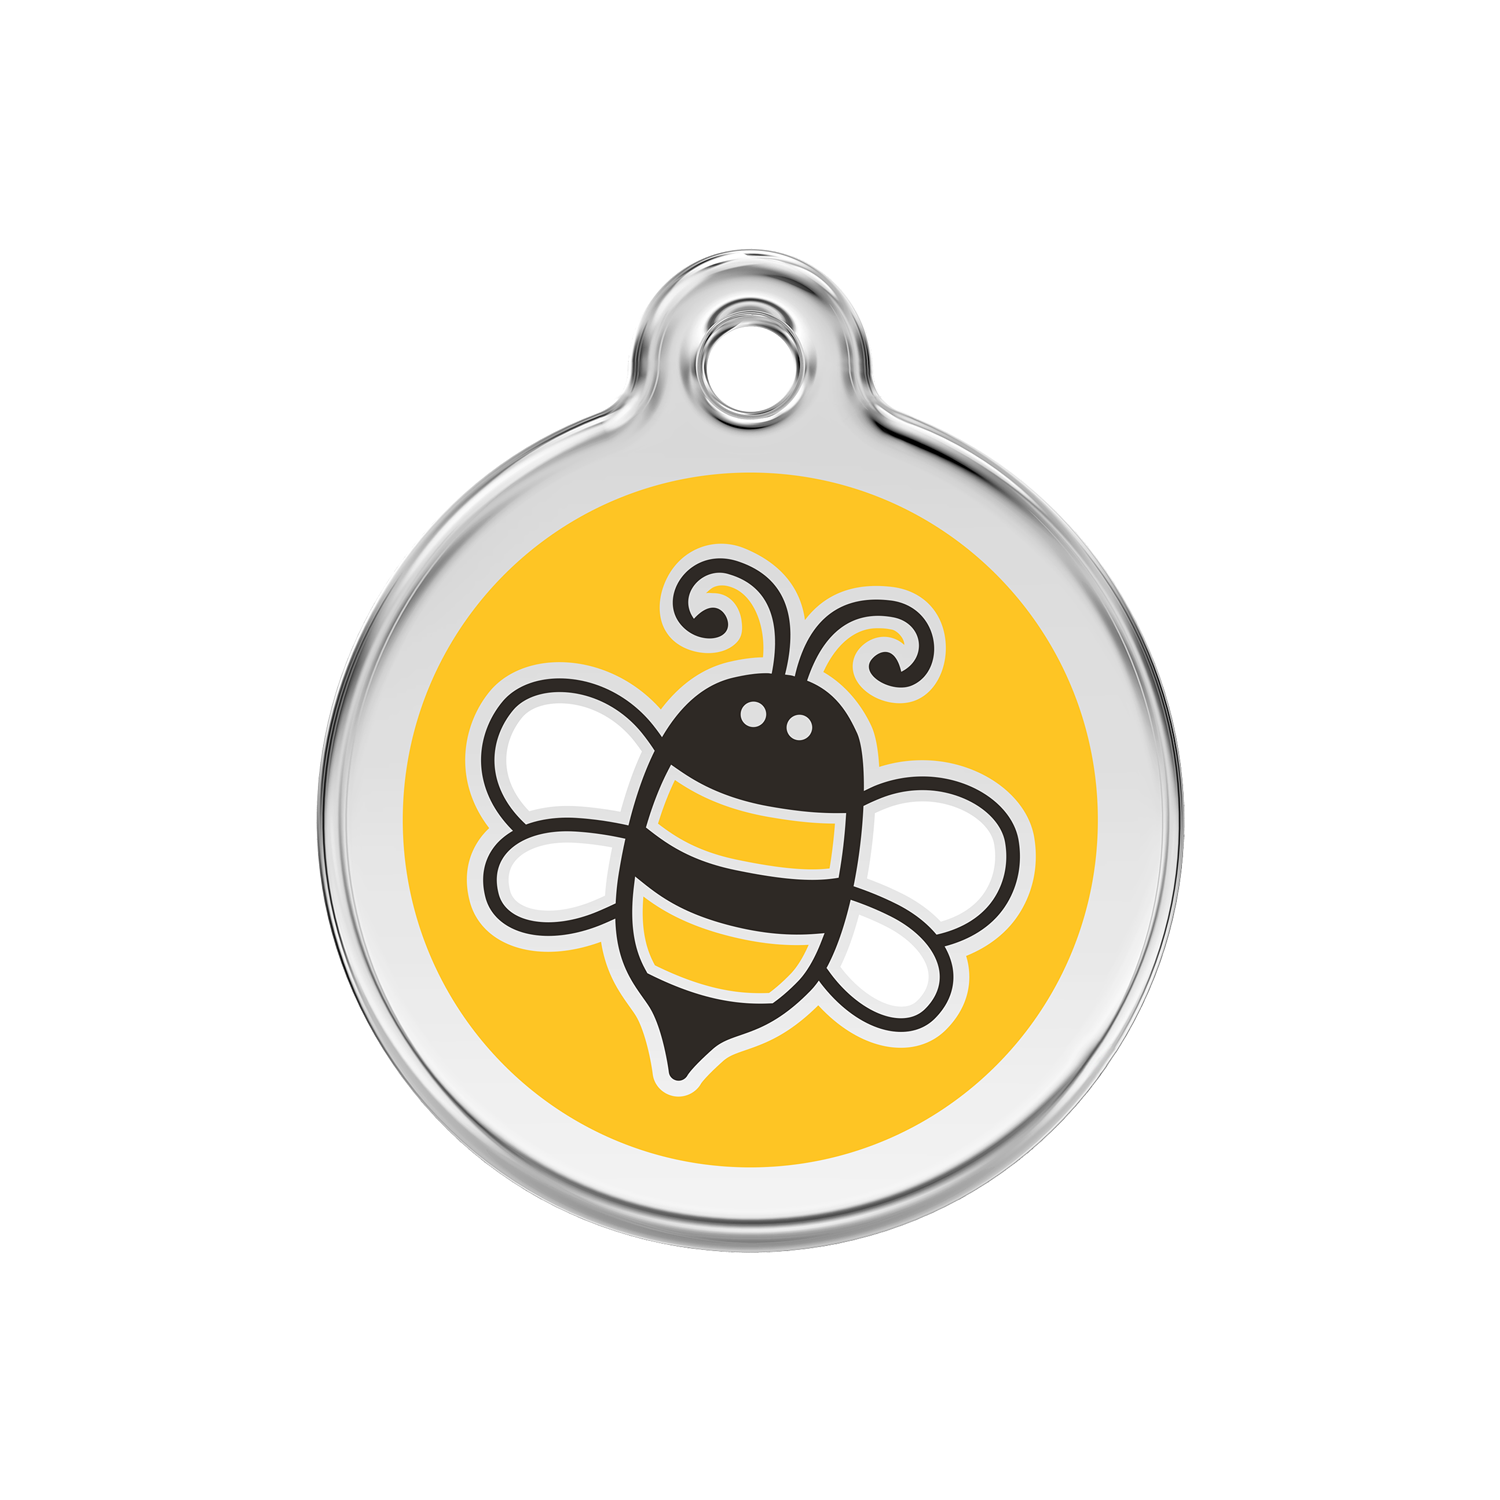 Yellow Bumble Bee Medium Enamel & Stainless Steel Tag>